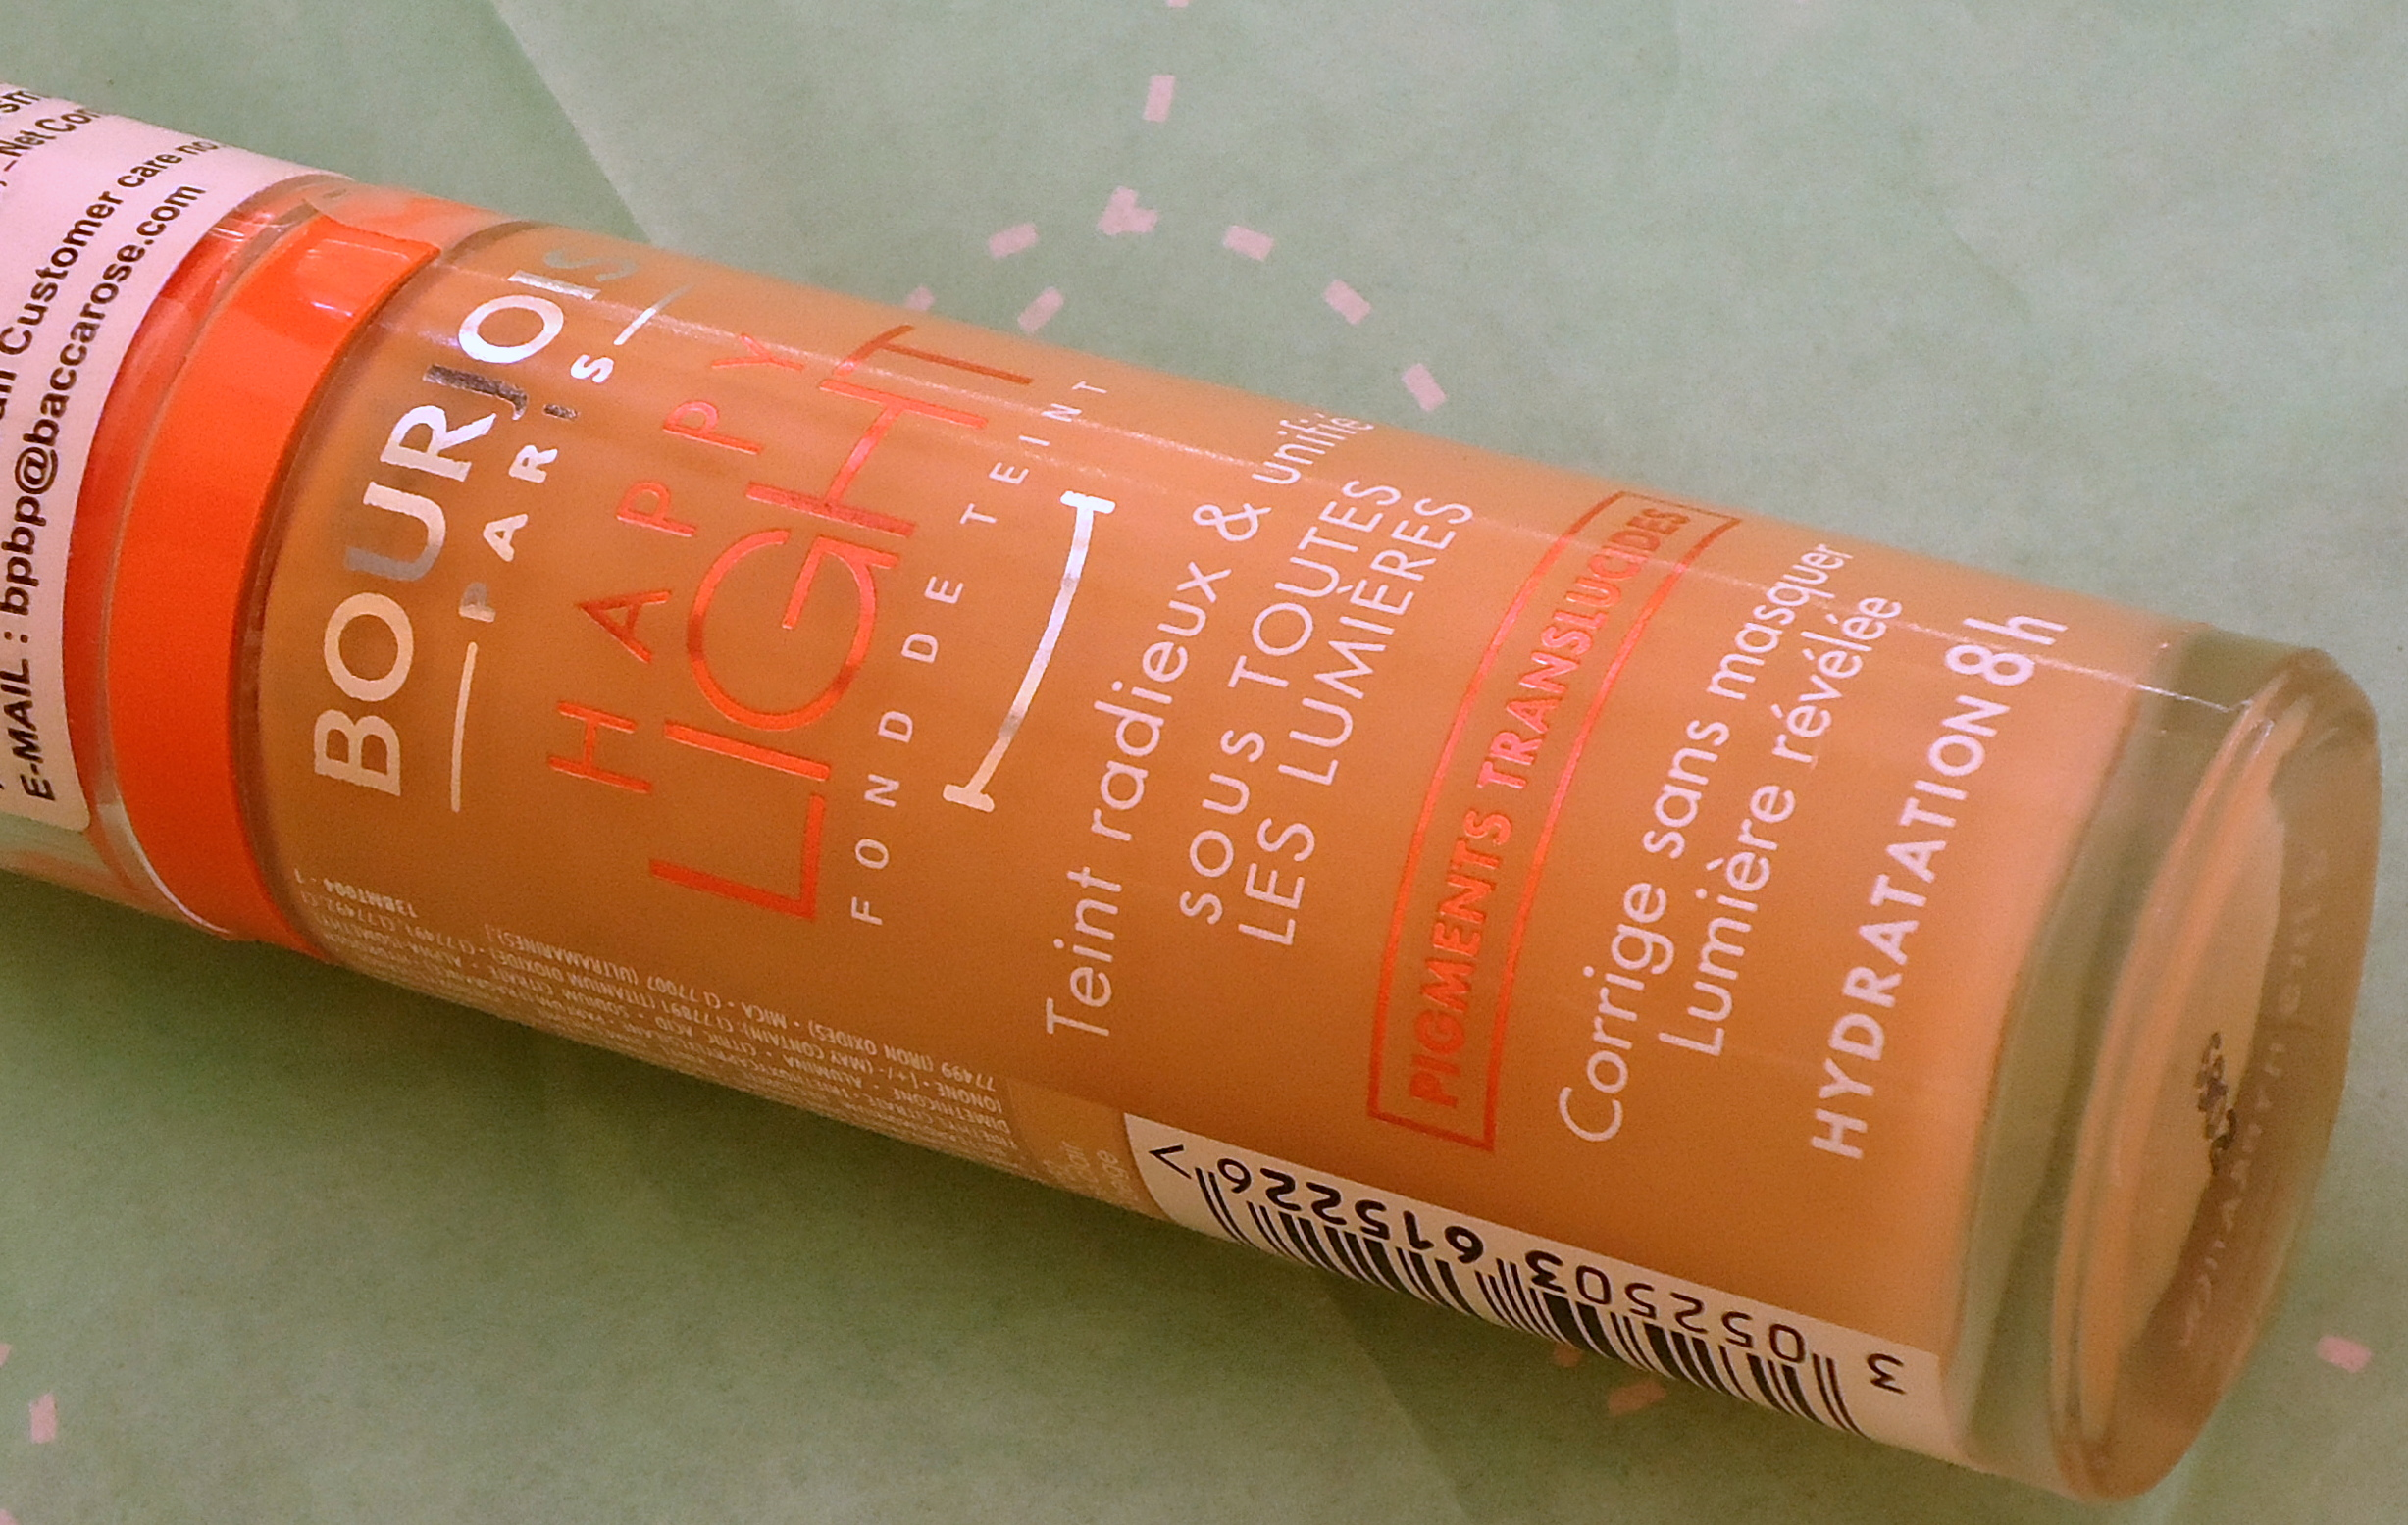 Bourjois Happy Light foundation in shade 52 review, Swatches & FOTD